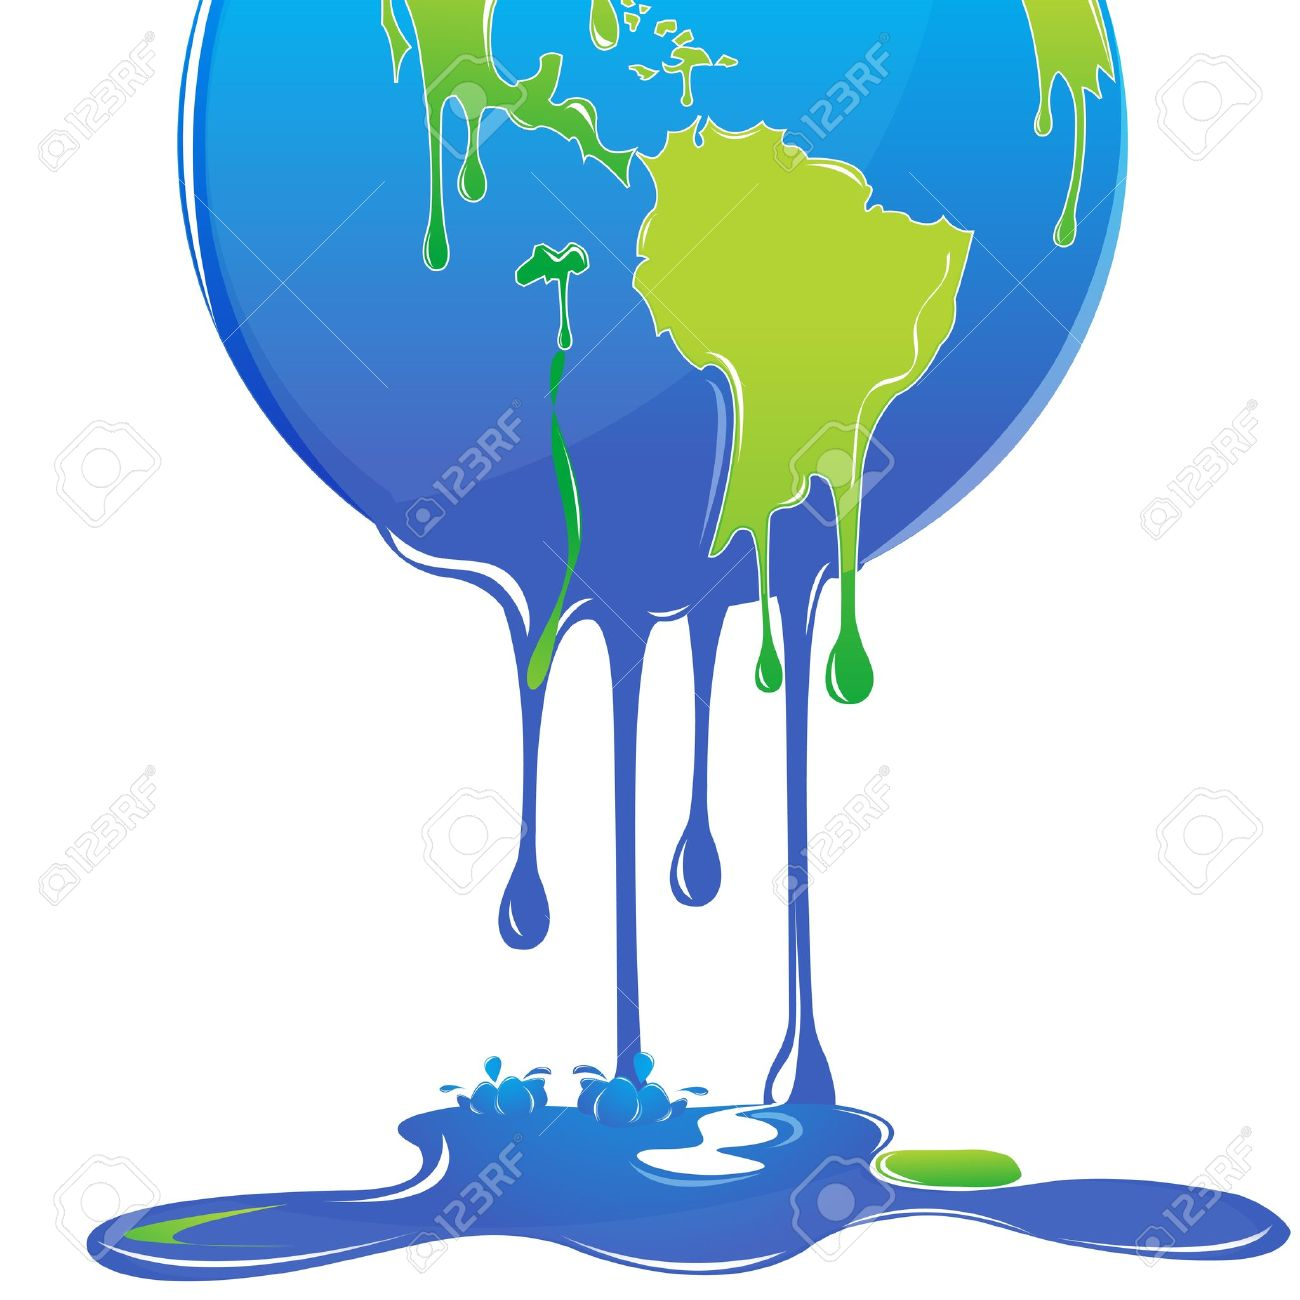 1300x1300 Disaster Clipart Global Issue